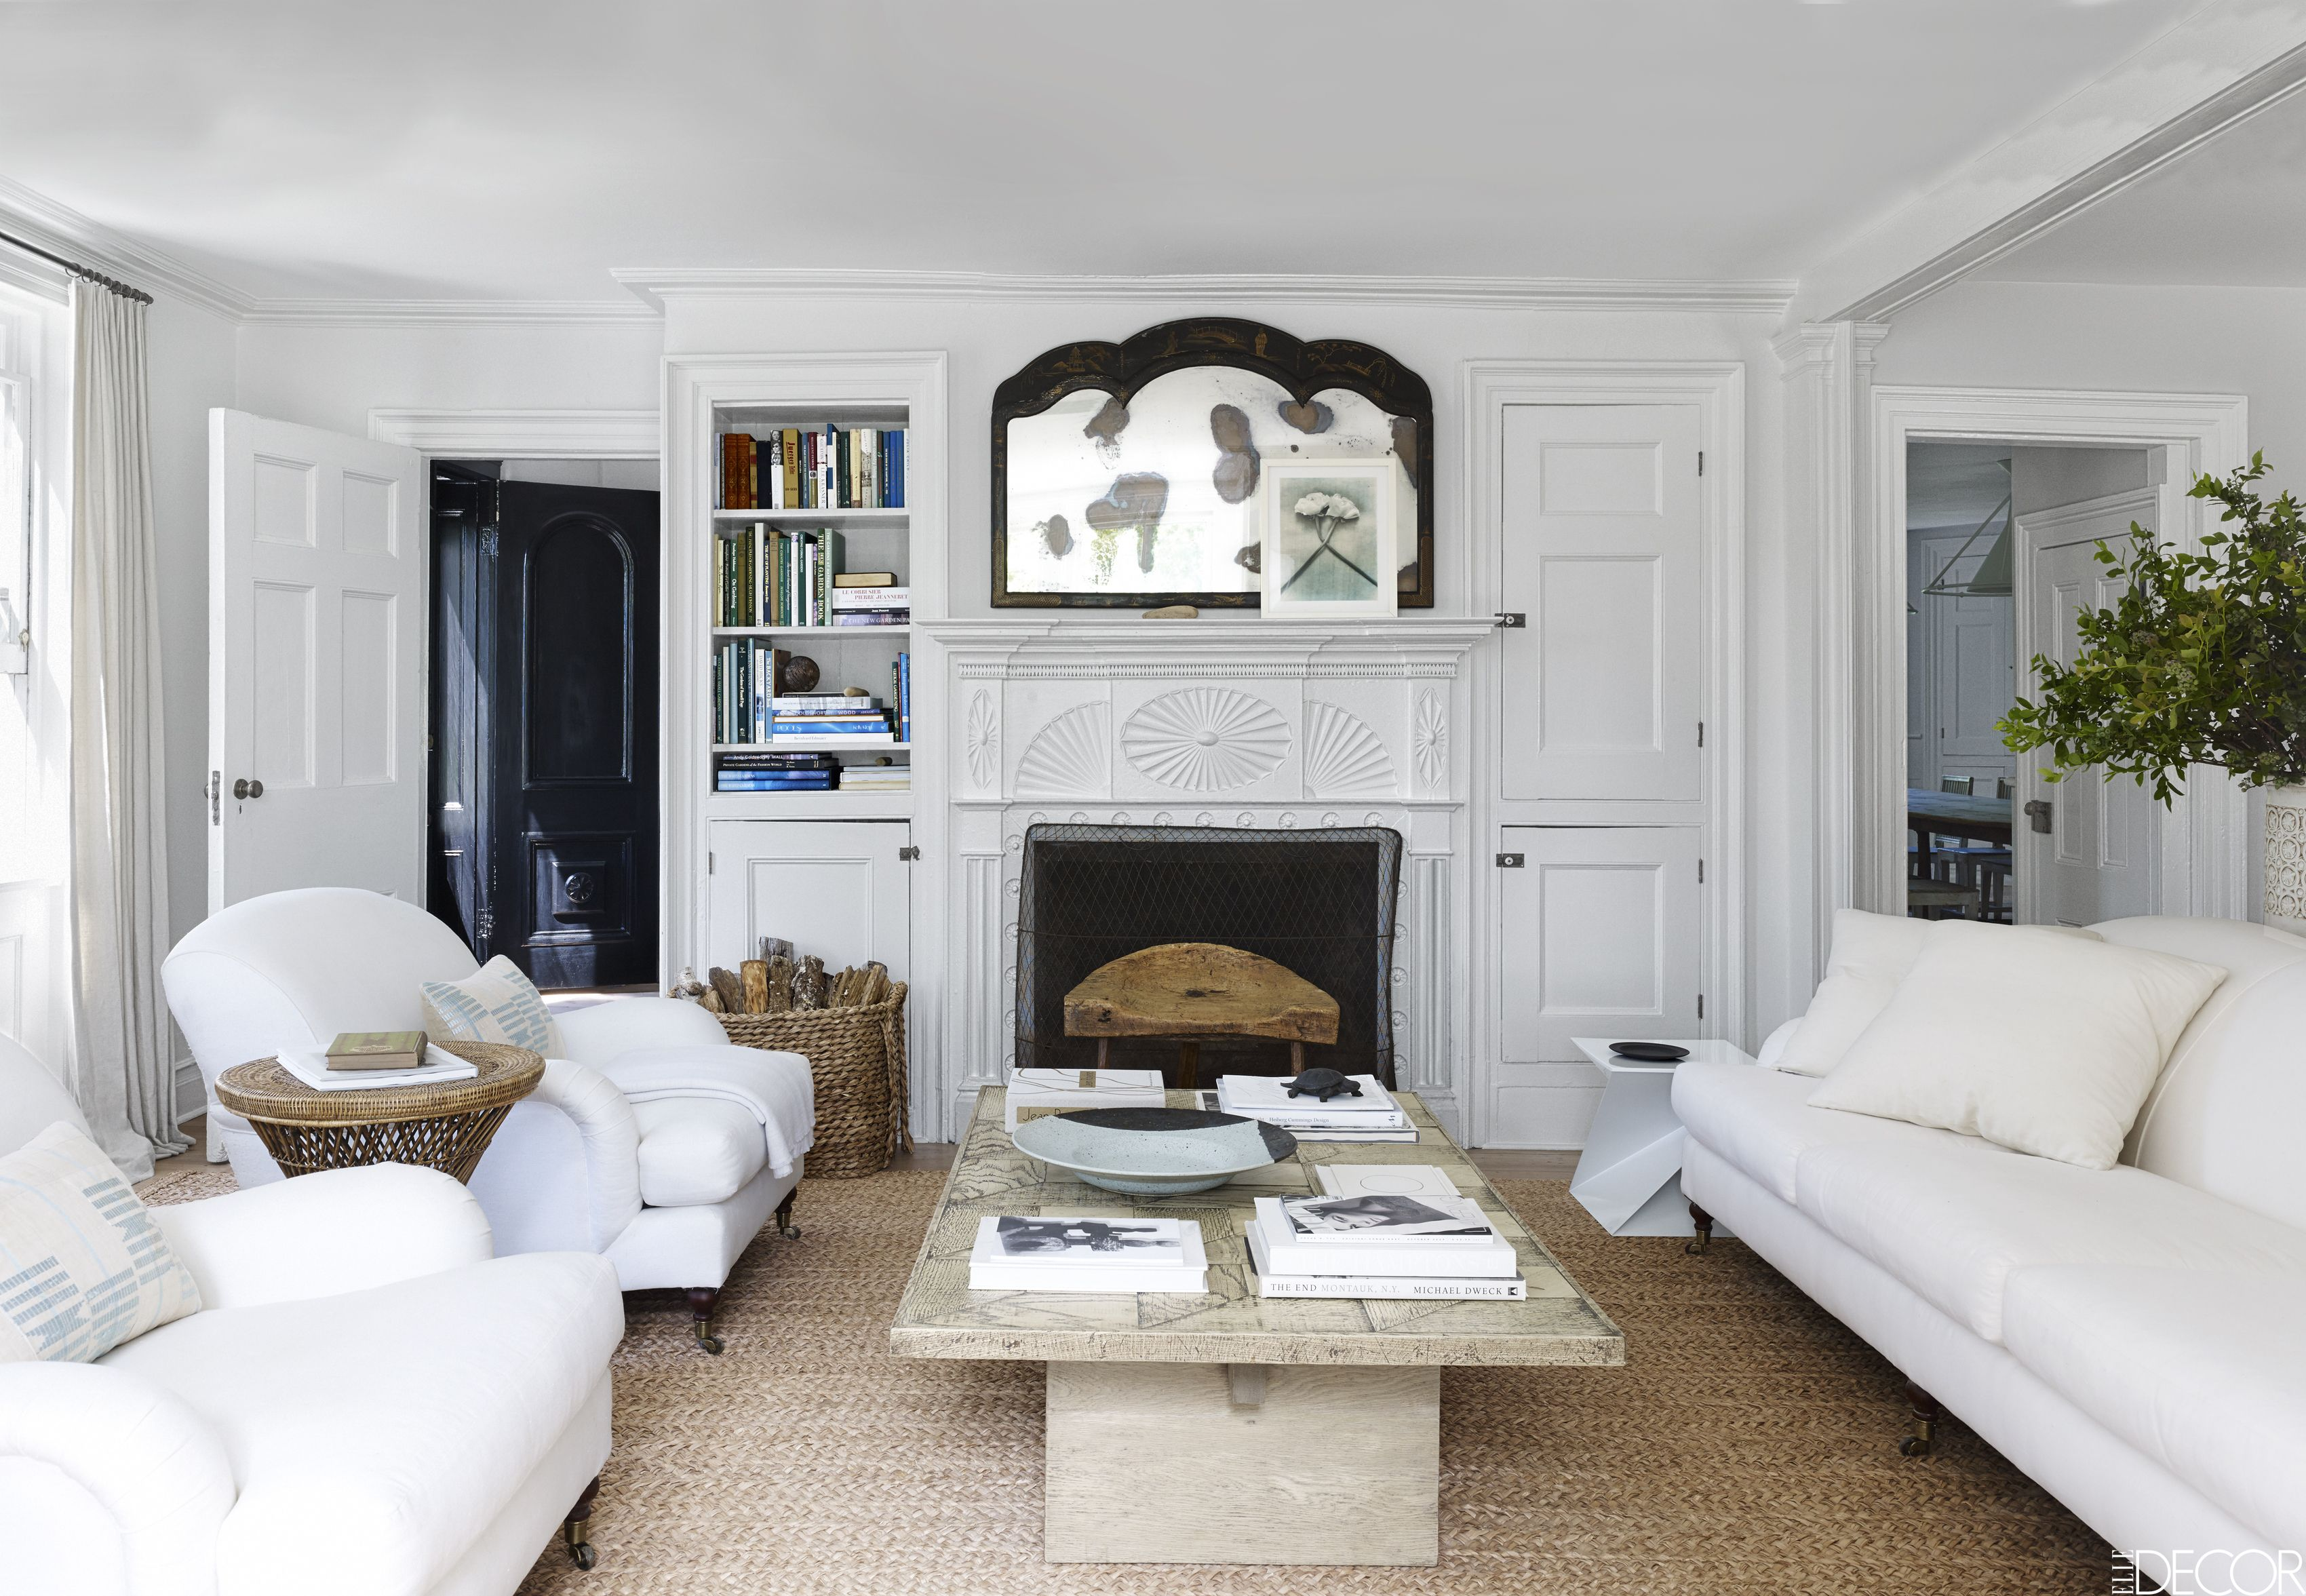 24 Best White Sofa Ideas - Living Room Decorating Ideas For White Sofas